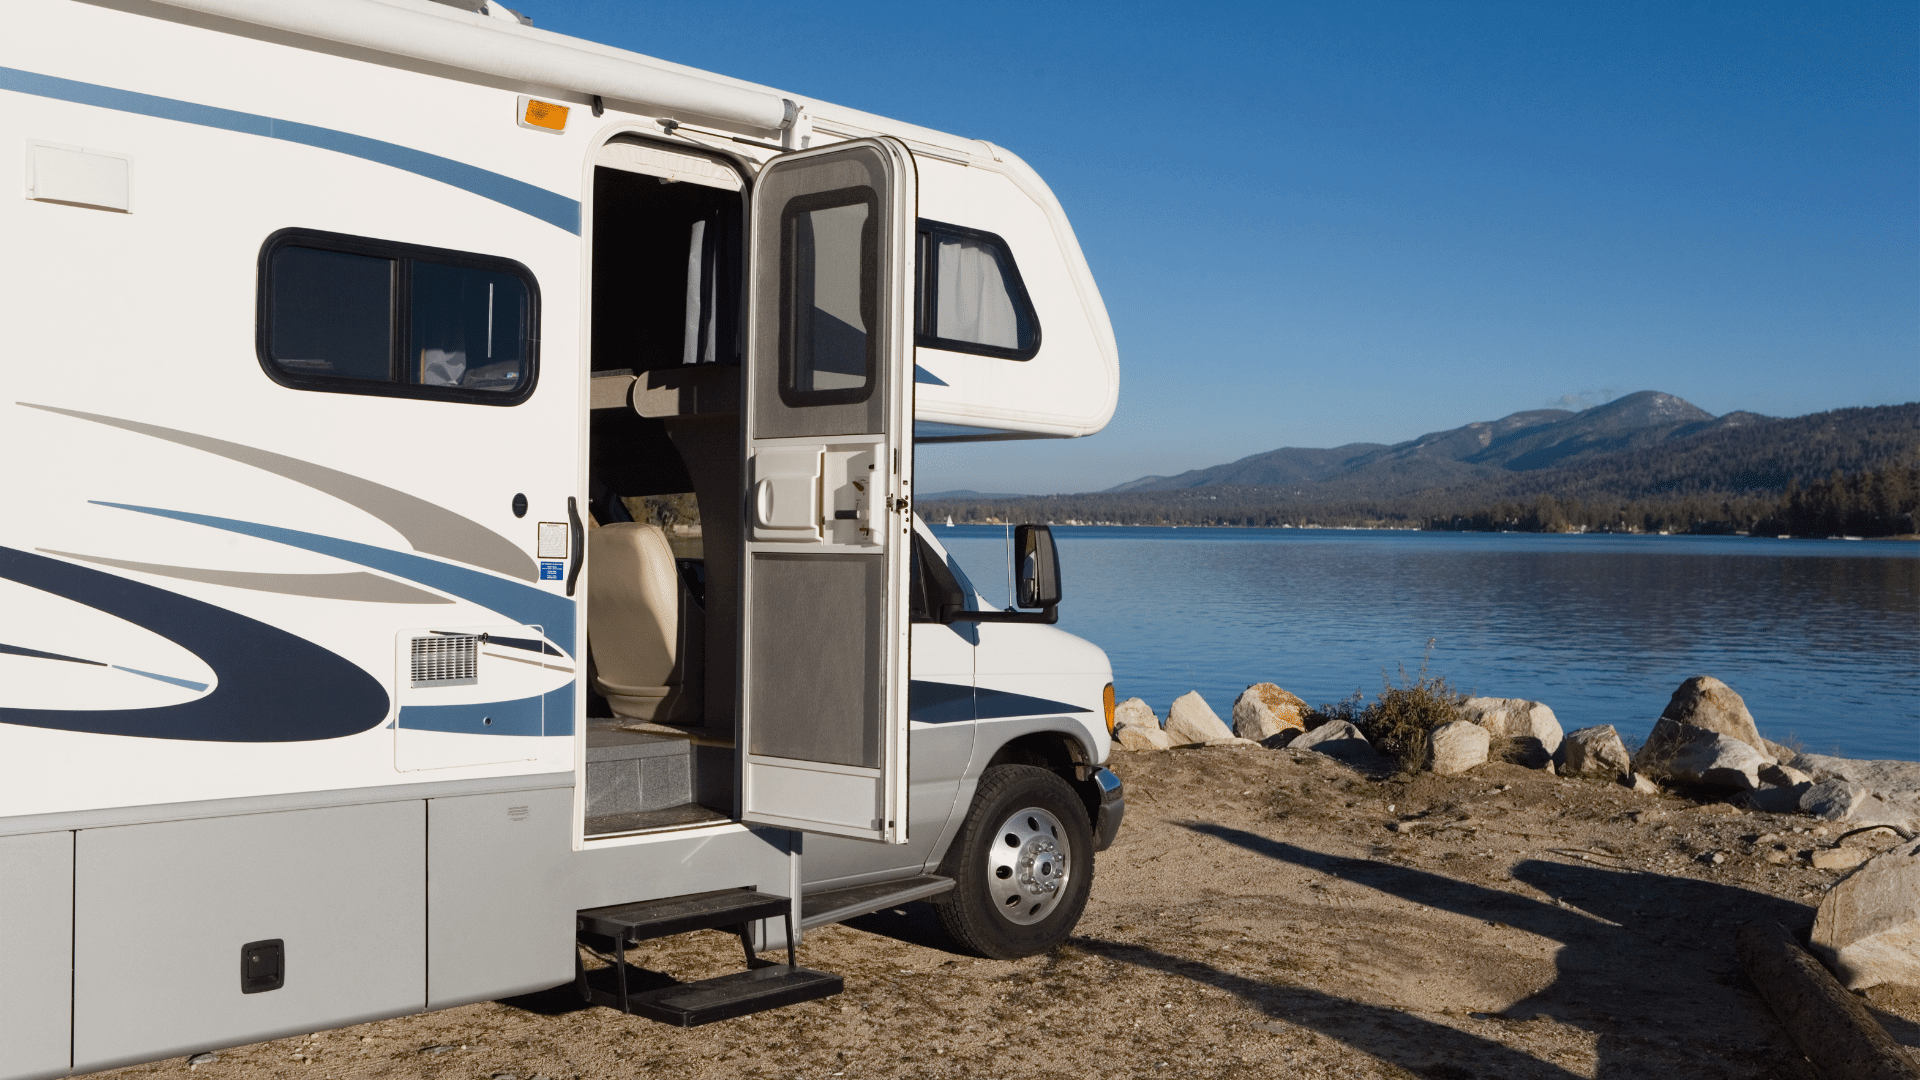 RV parked near a lake on a sunny day. Does living in an RV save money?